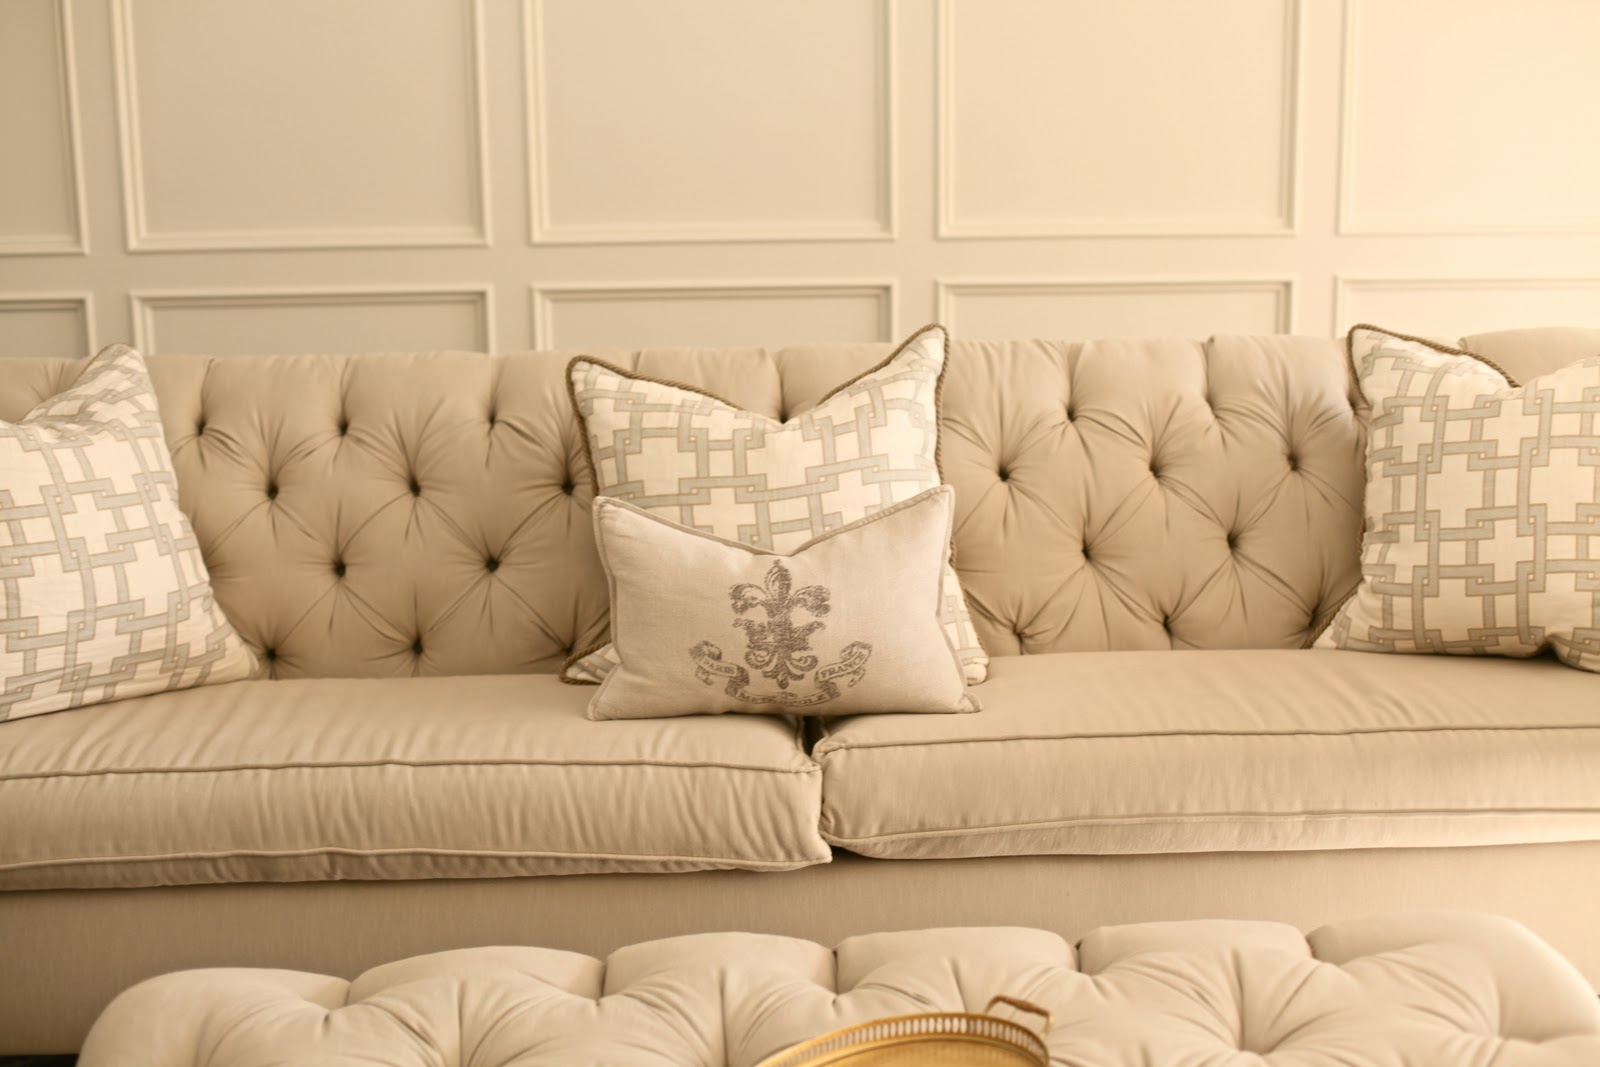 Cleaning White Fabric Sofa 4 Seater Set 43 Gold The Best Upholstery Cleaner